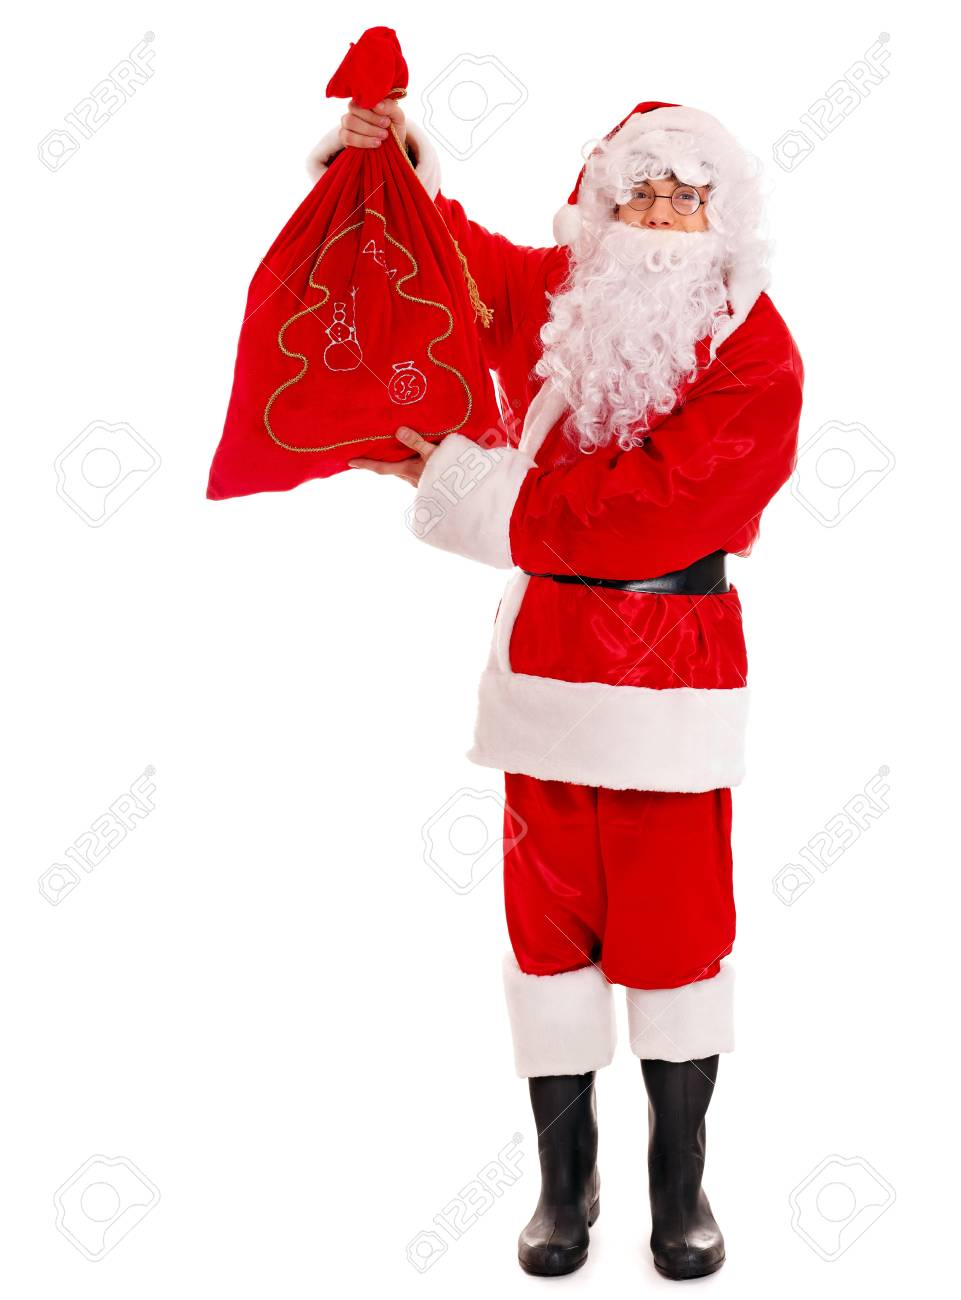 Santa Clause holding gift. Isolated. Stock Photo - 16609936